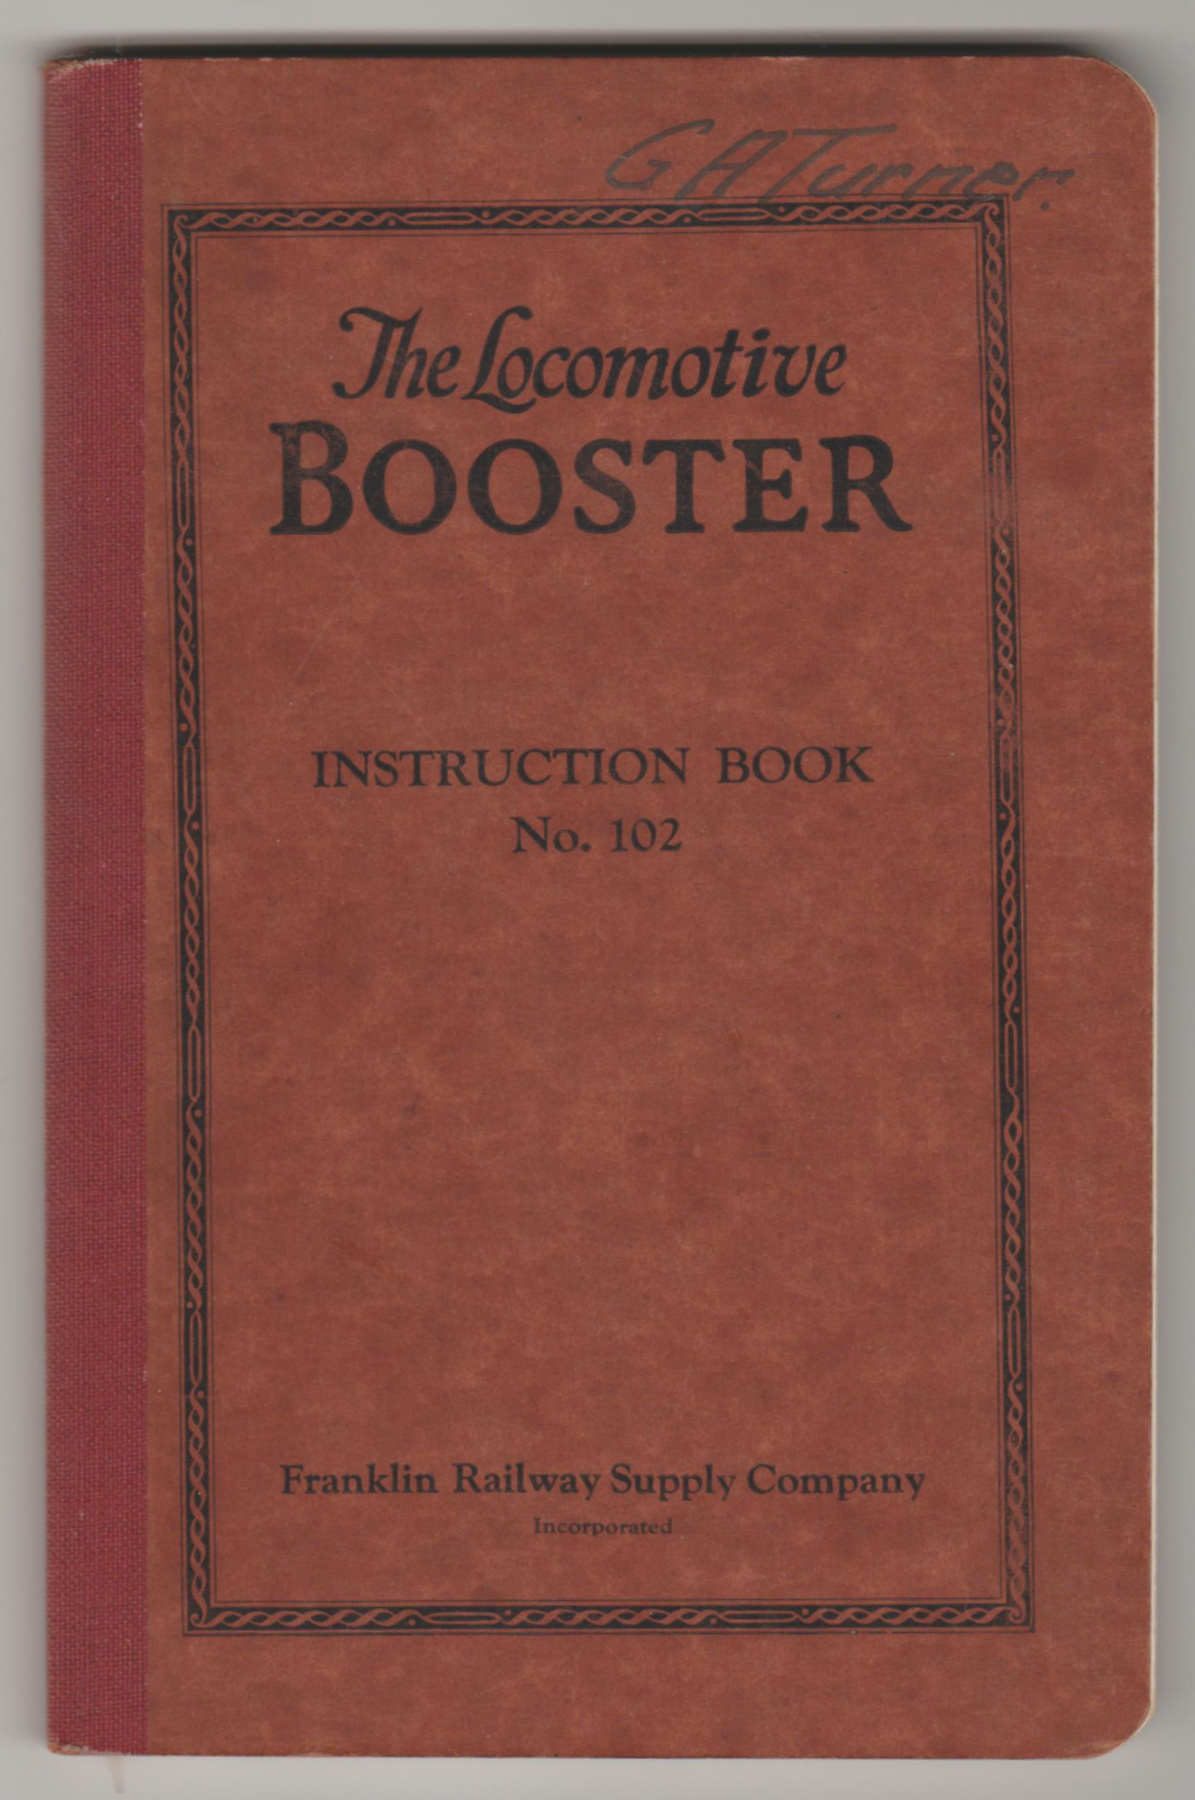 Image for THE LOCOMOTIVE BOOSTER: Types C-1 and C-2. Instruction Book No. 102